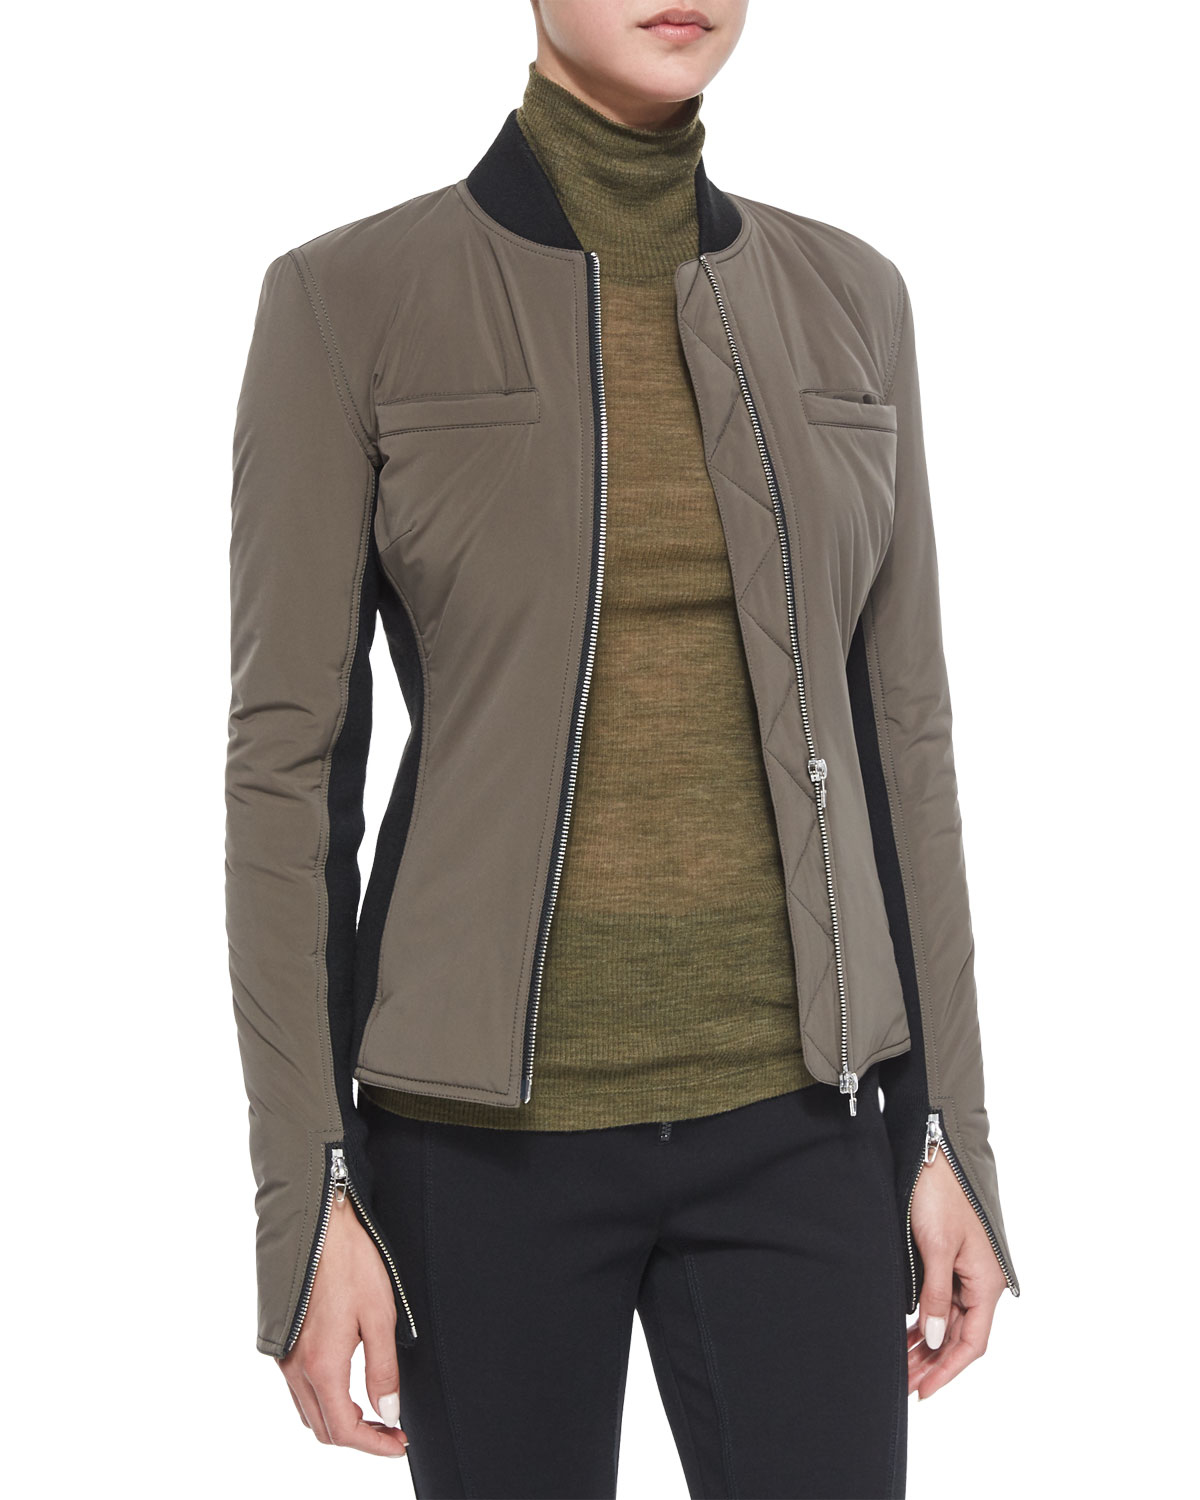 T by alexander wang Race Suit Fitted Zip Bomber Jacket in Green | Lyst